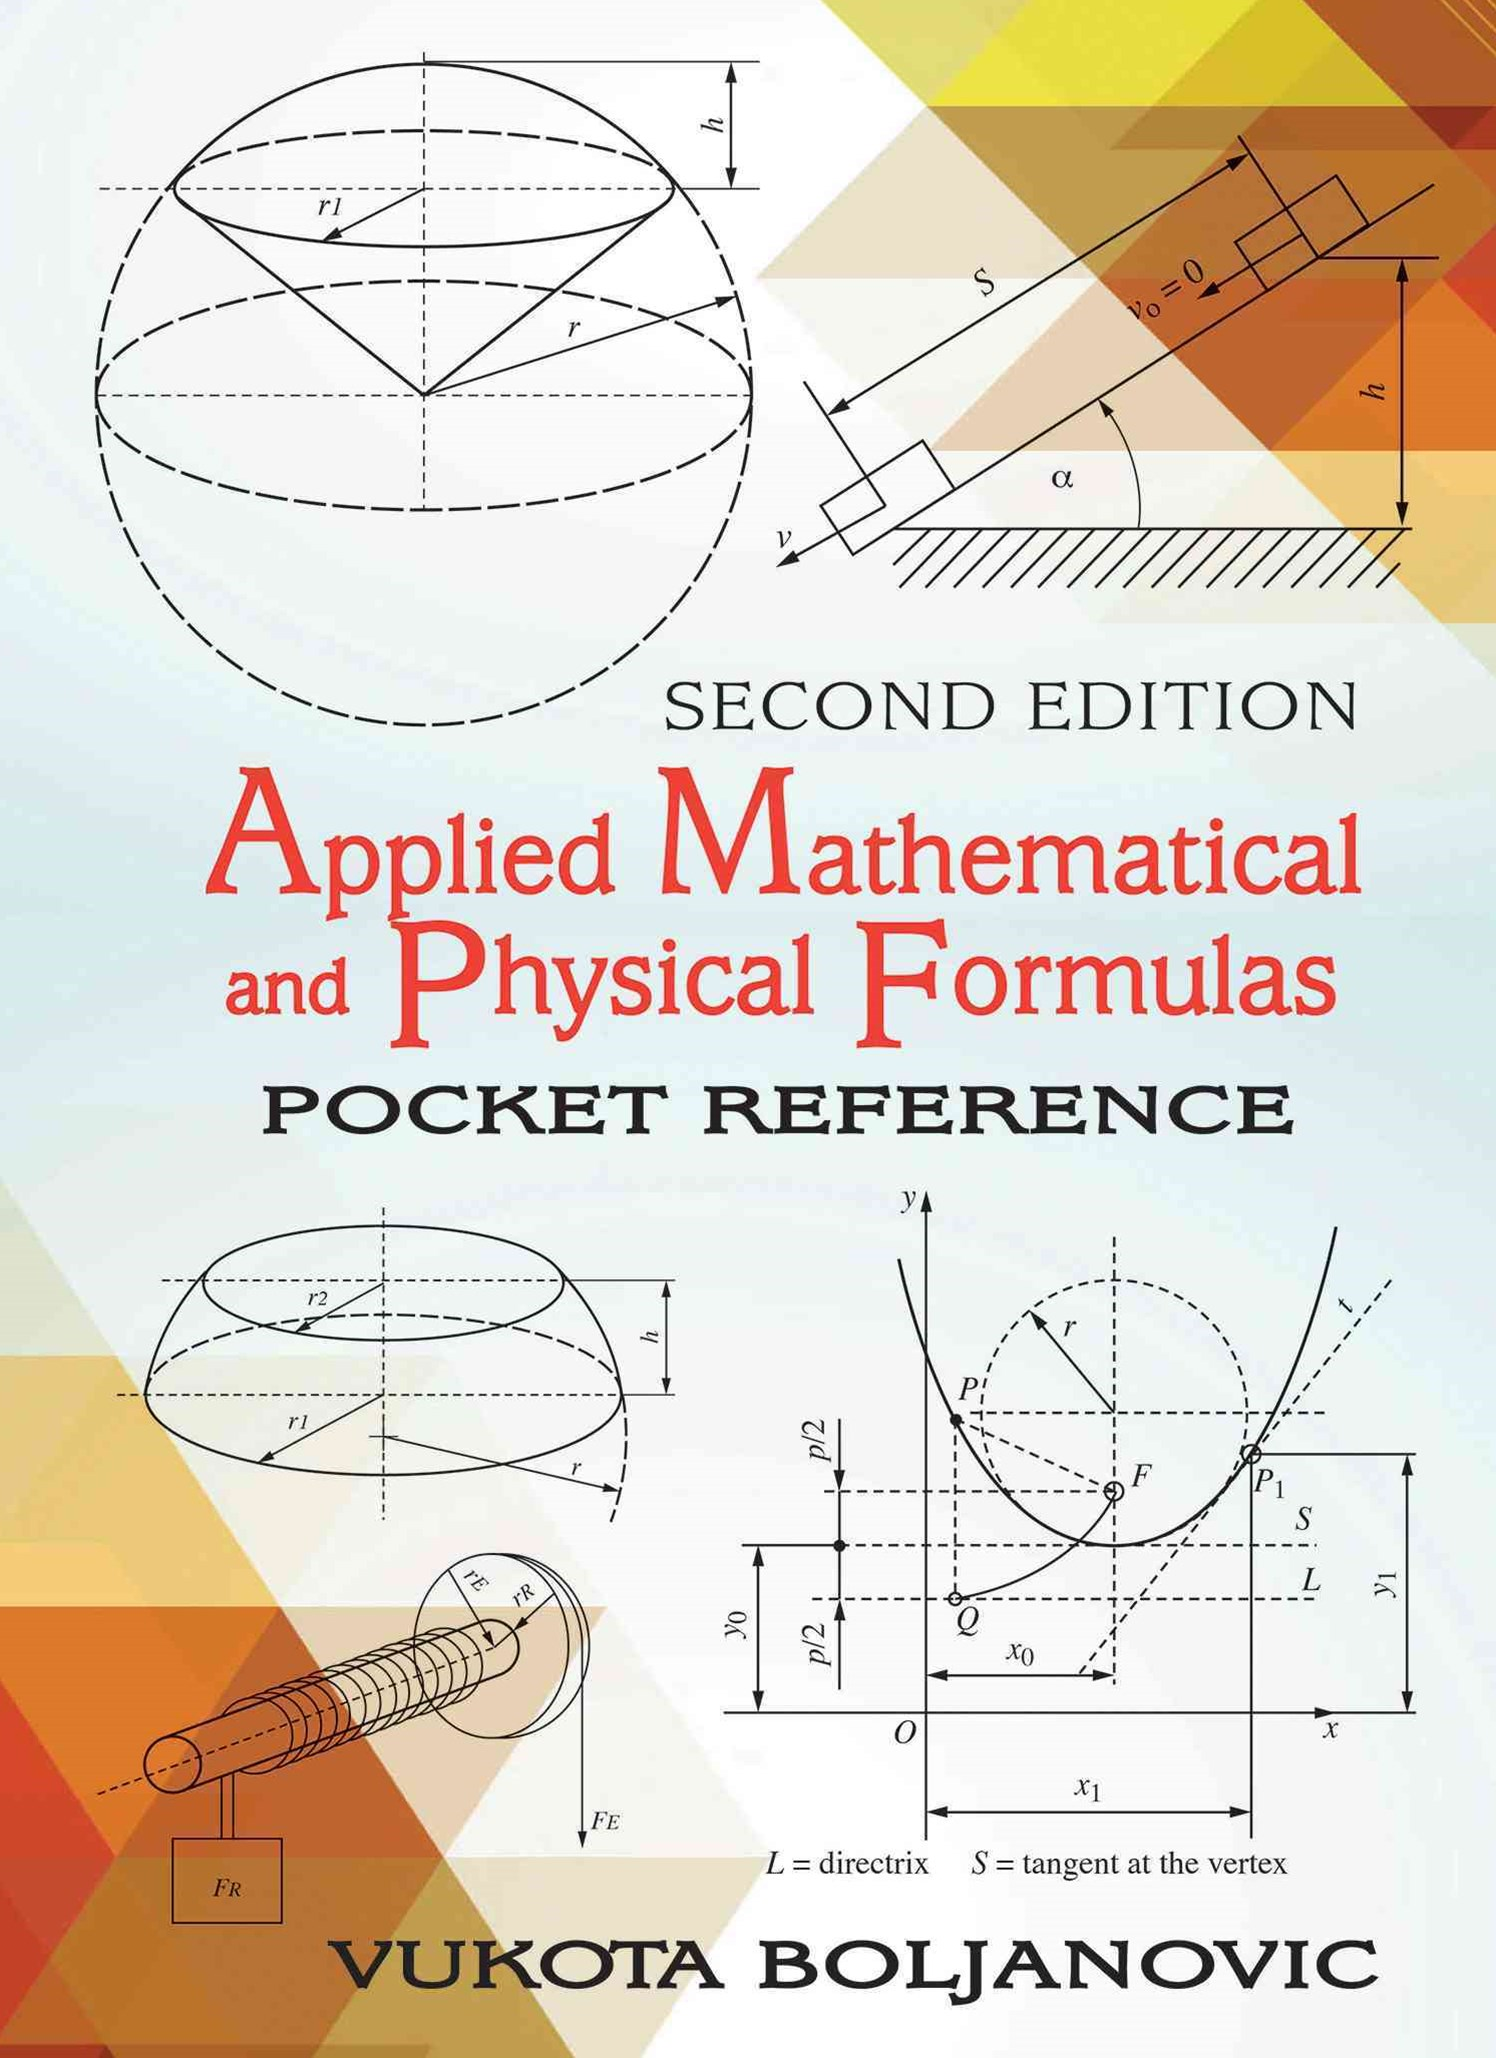 Applied Mathematical and Physical Formulas Second Edition